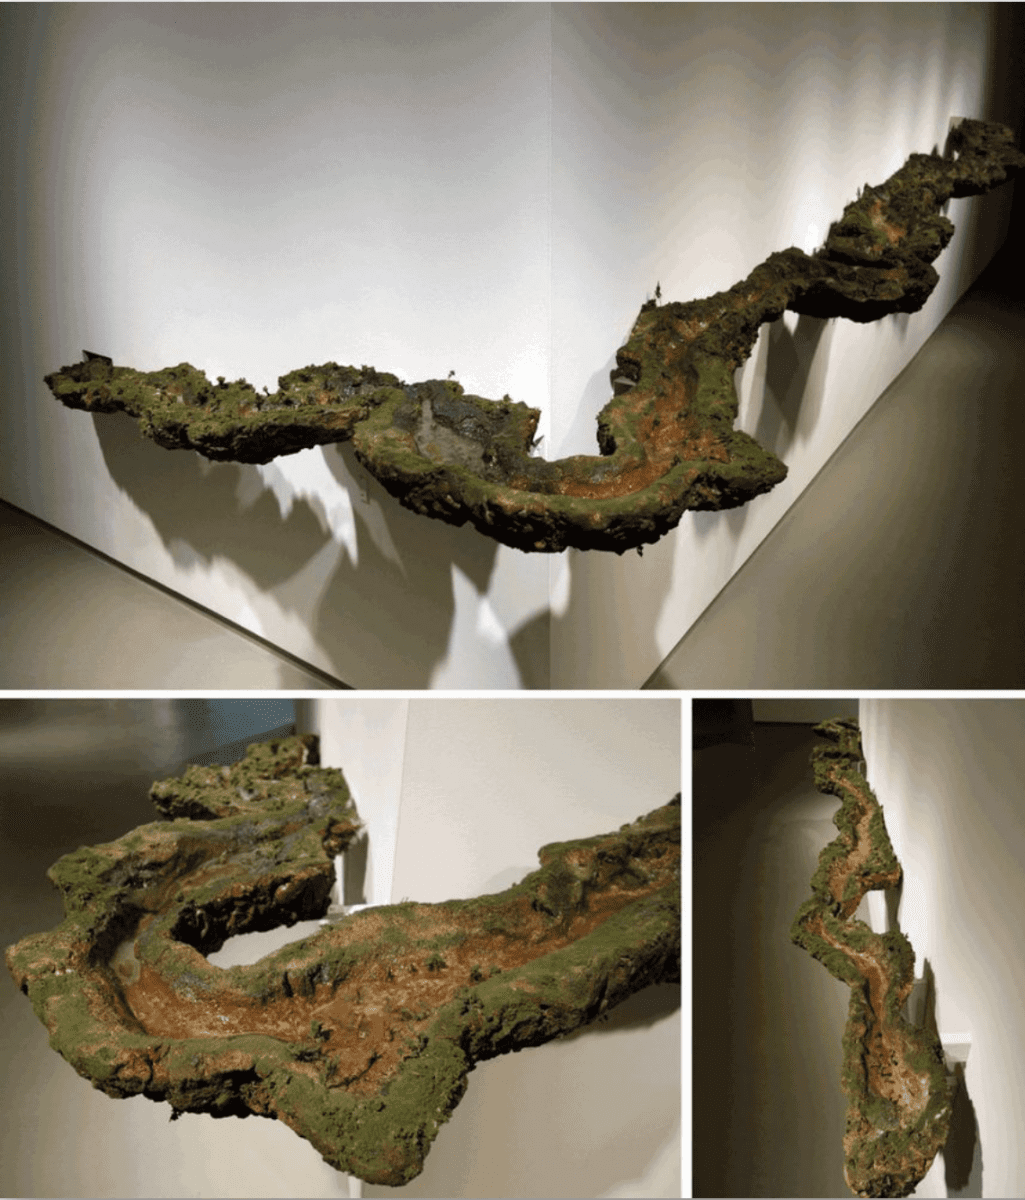 Kathleen Vance, St. Johns River (installation view), 2016, Resin, polymer clay, water, soil, 24 x 36 x 5 in. approx. (variable dimensions)